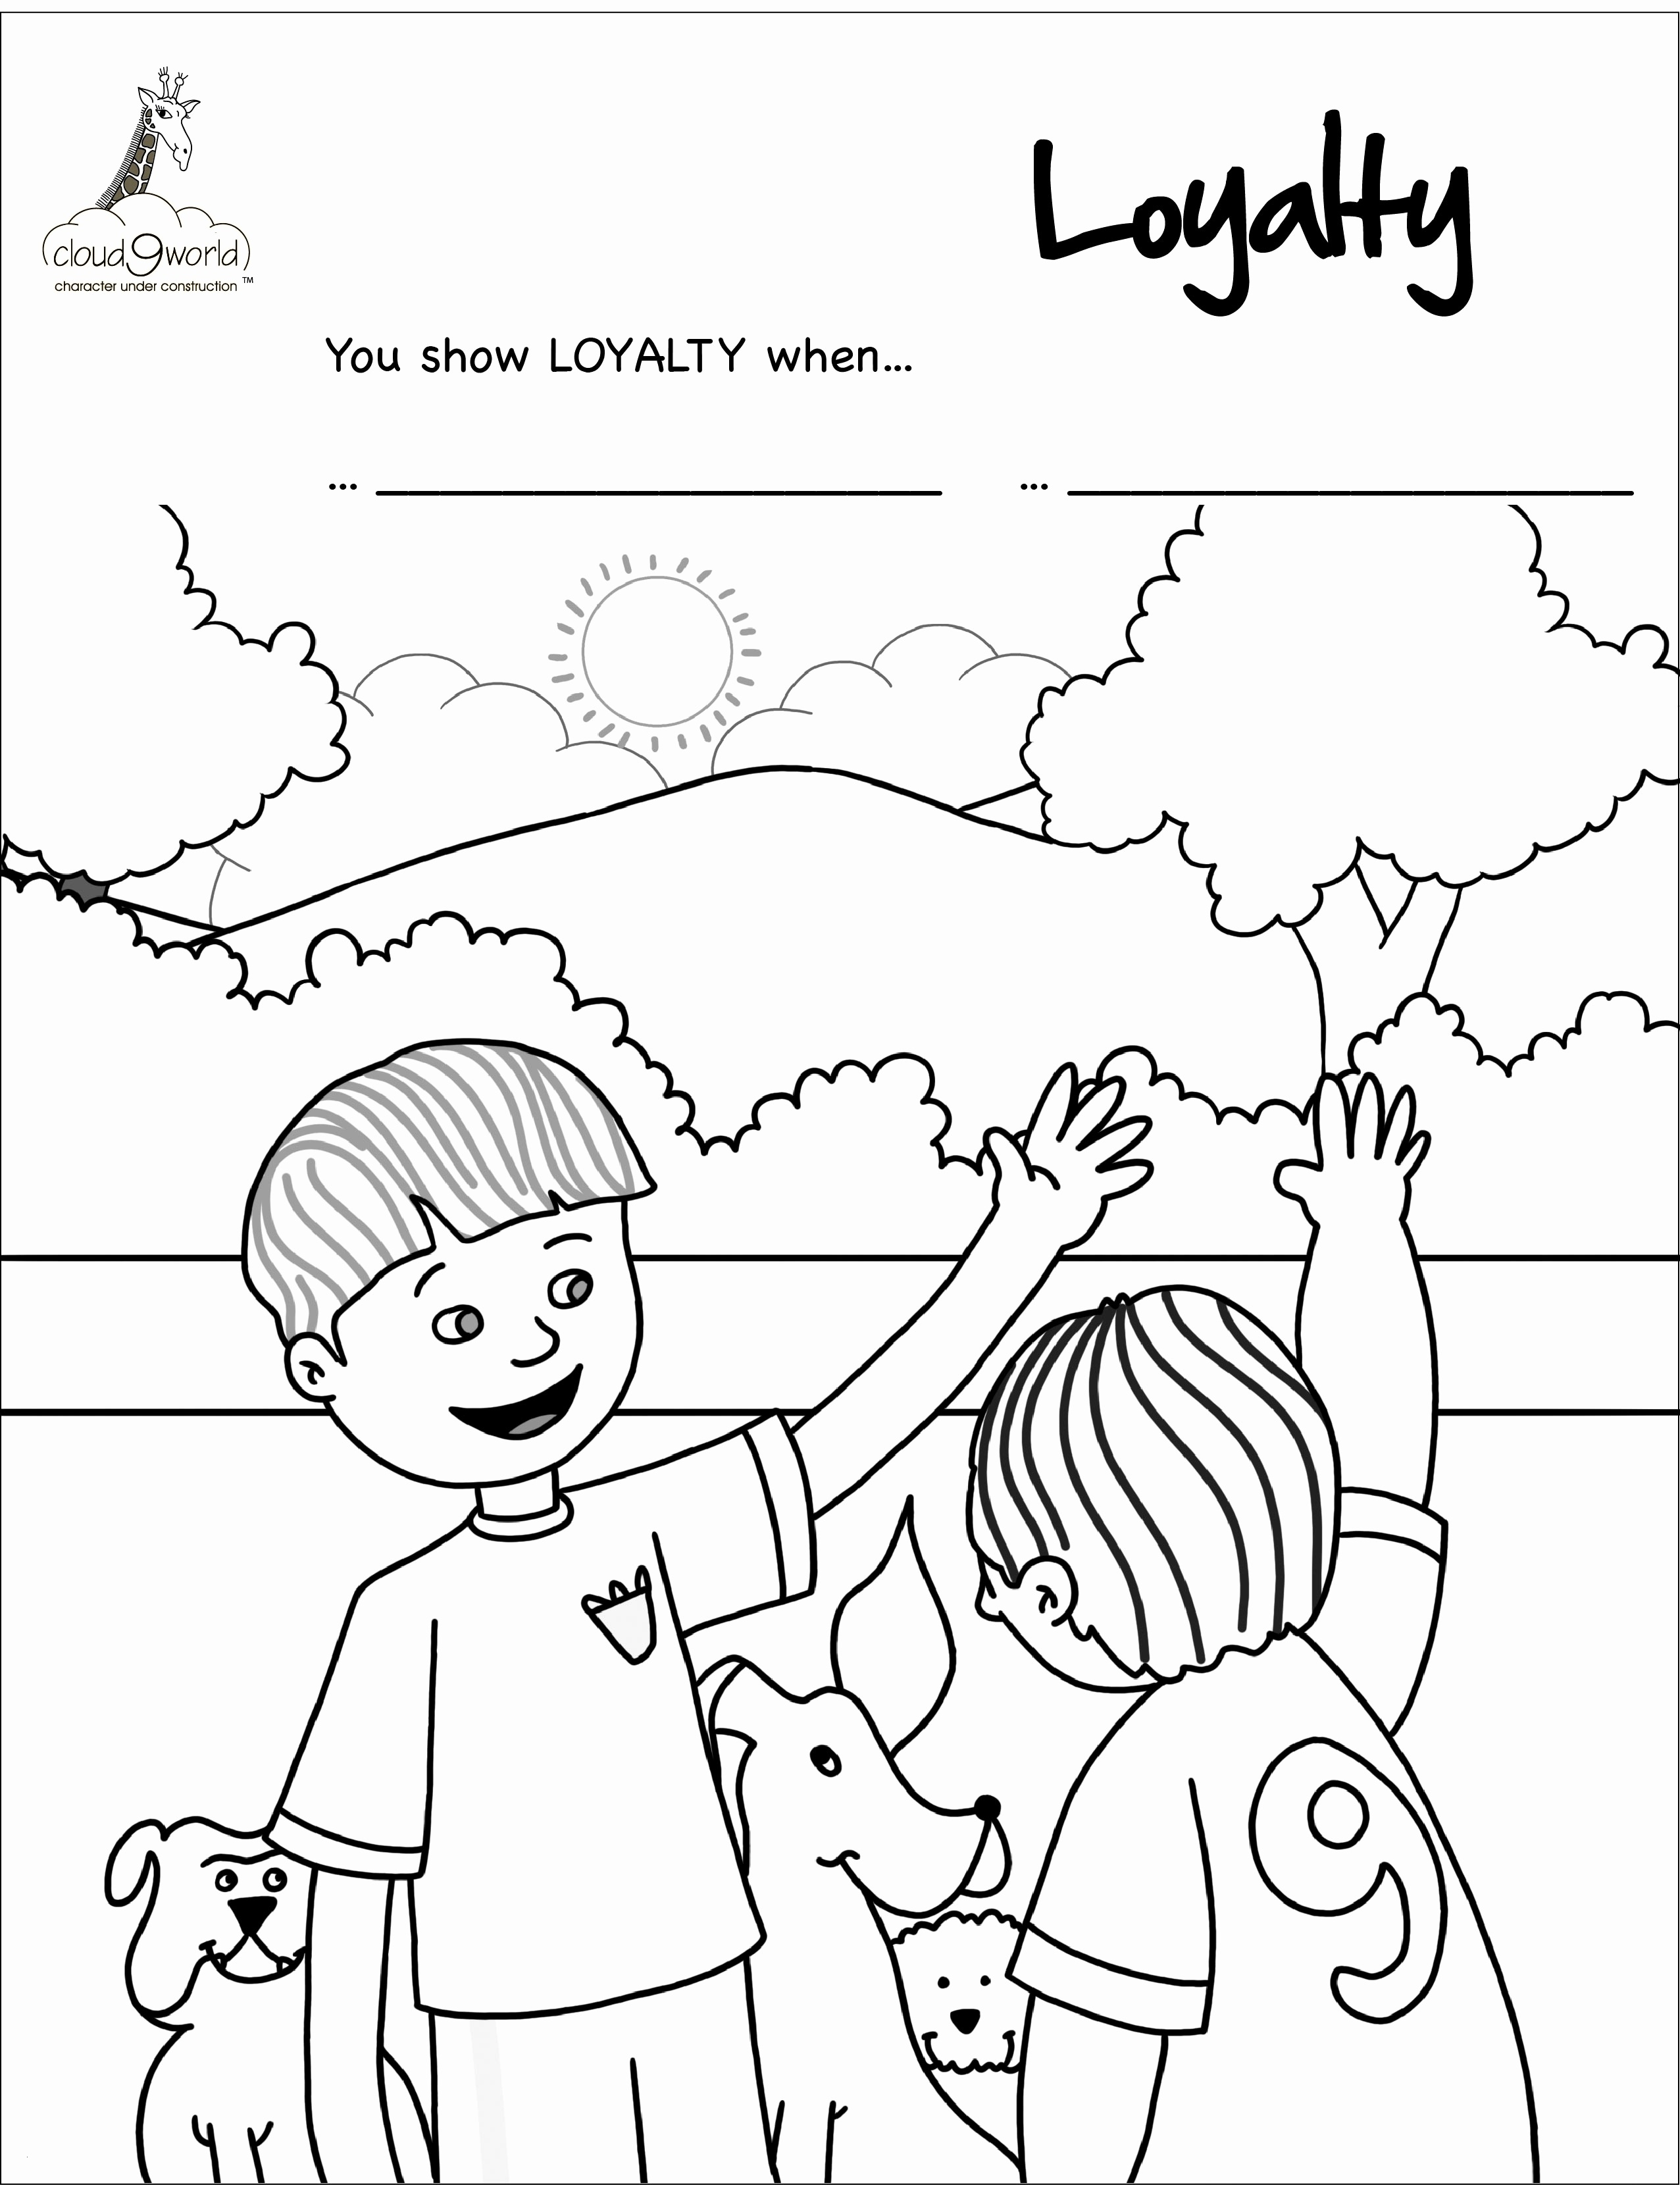 Coloring Pages Minion  to Print 18b - To print for your project